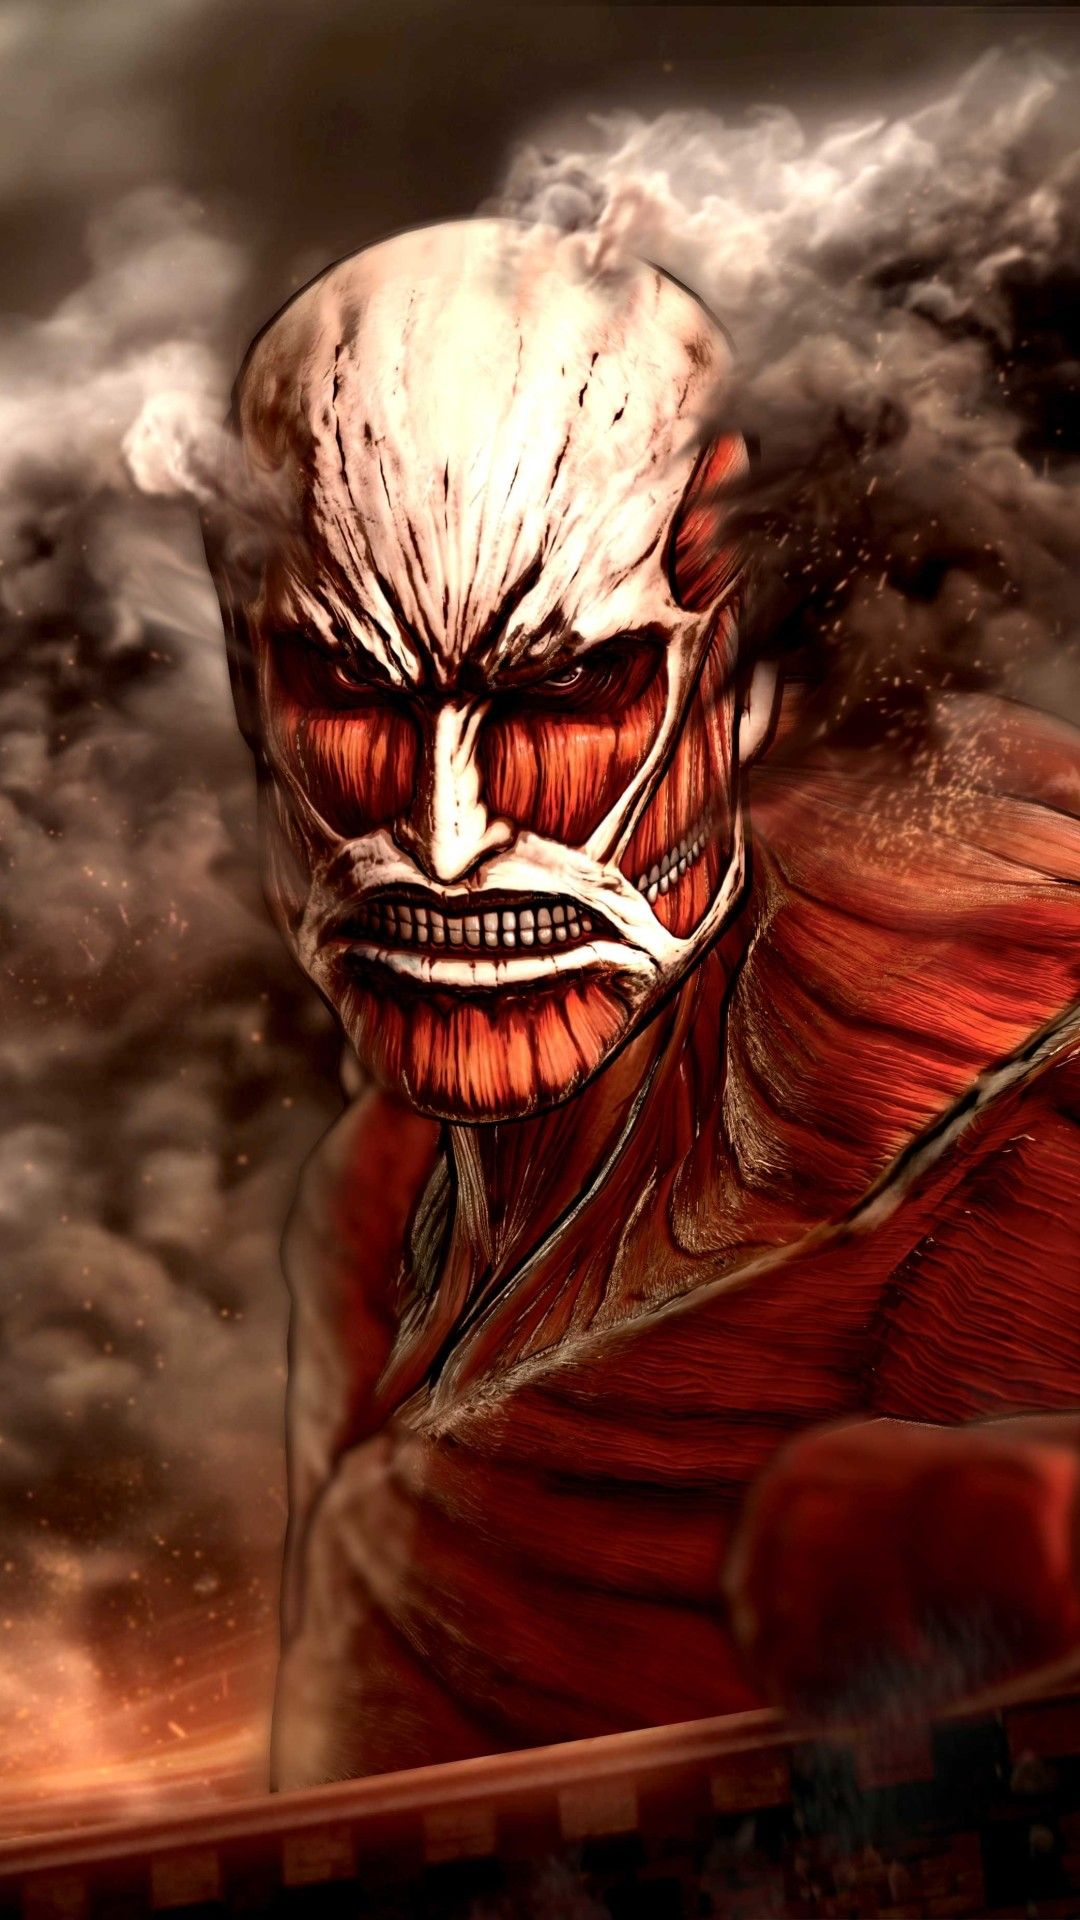 Attack on titan may be popular but how much do you actually know about the series? Attack On Titan Lockscreen - KoLPaPer - Awesome Free HD ...